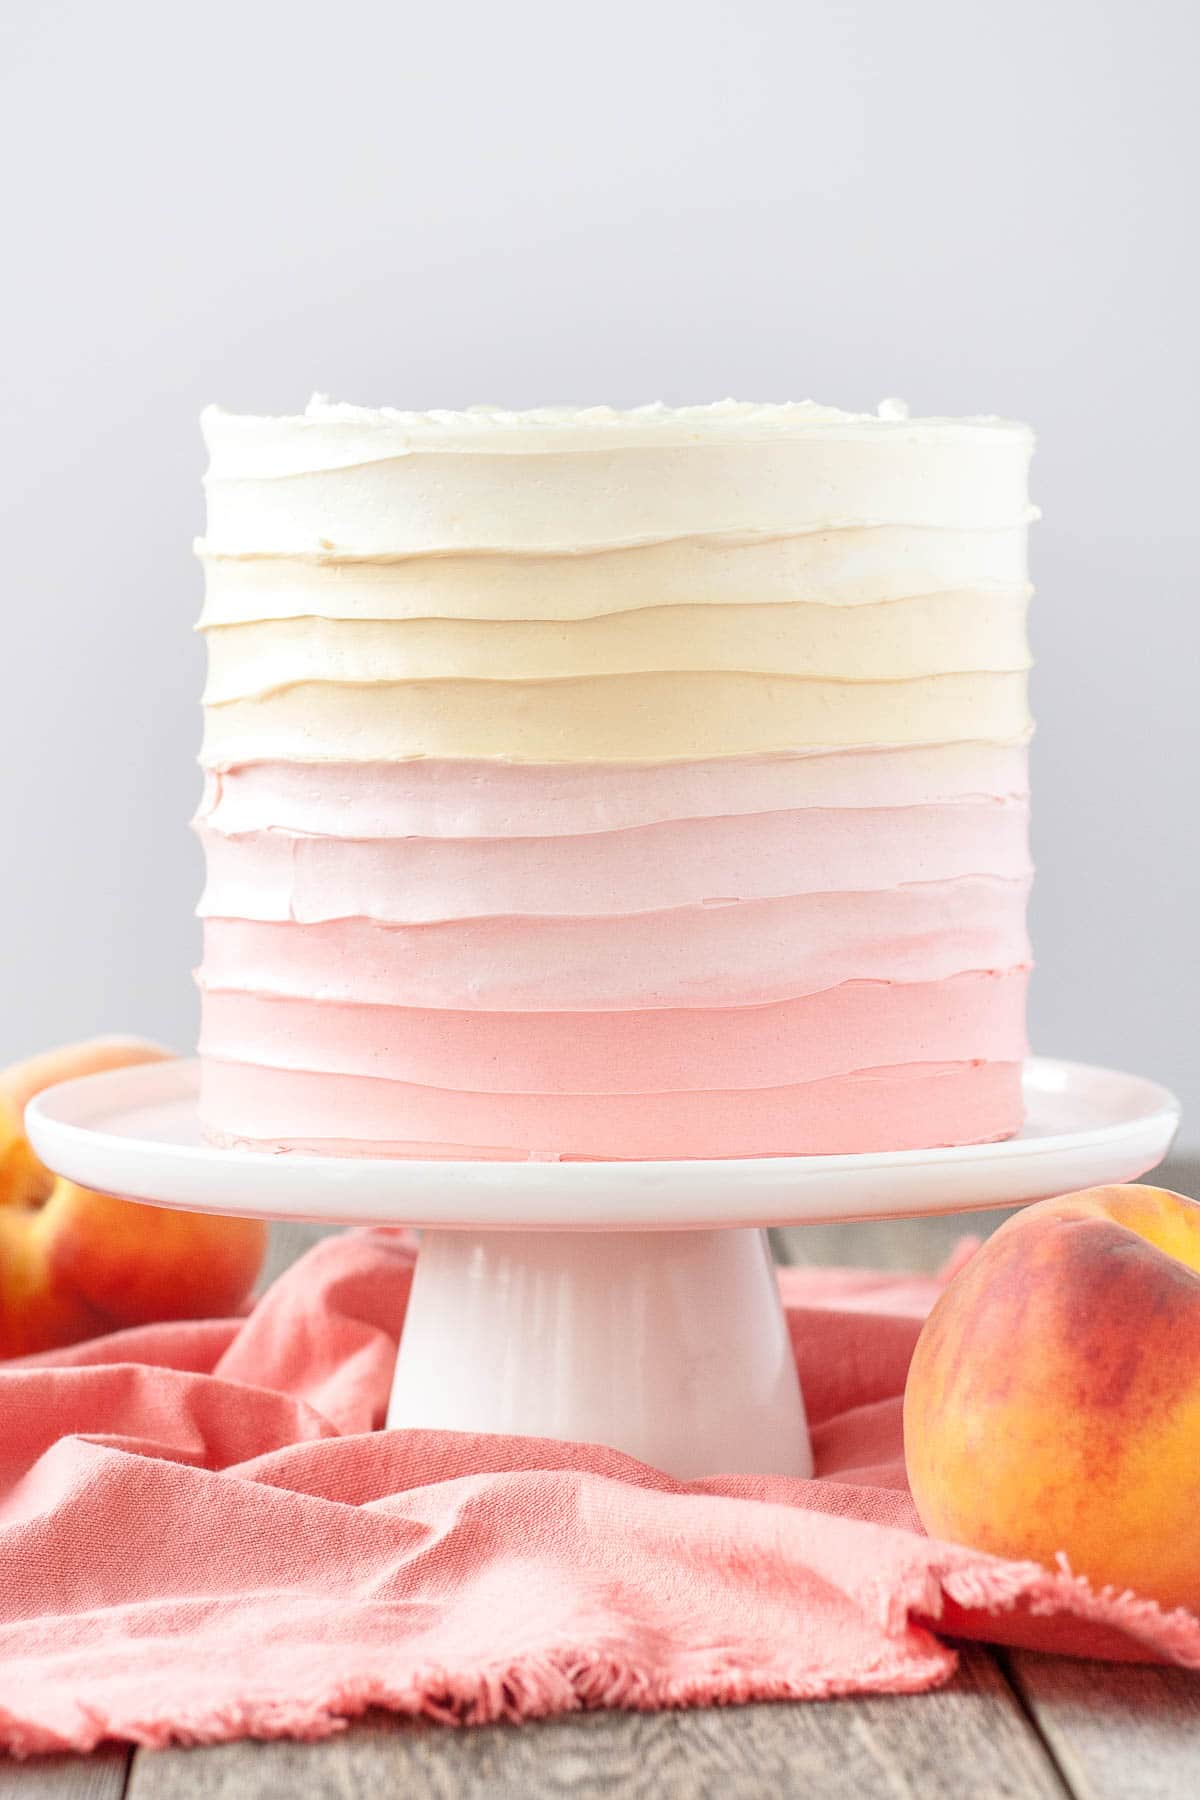 Peach cake with homemade peach filling and ombre peach frosting.